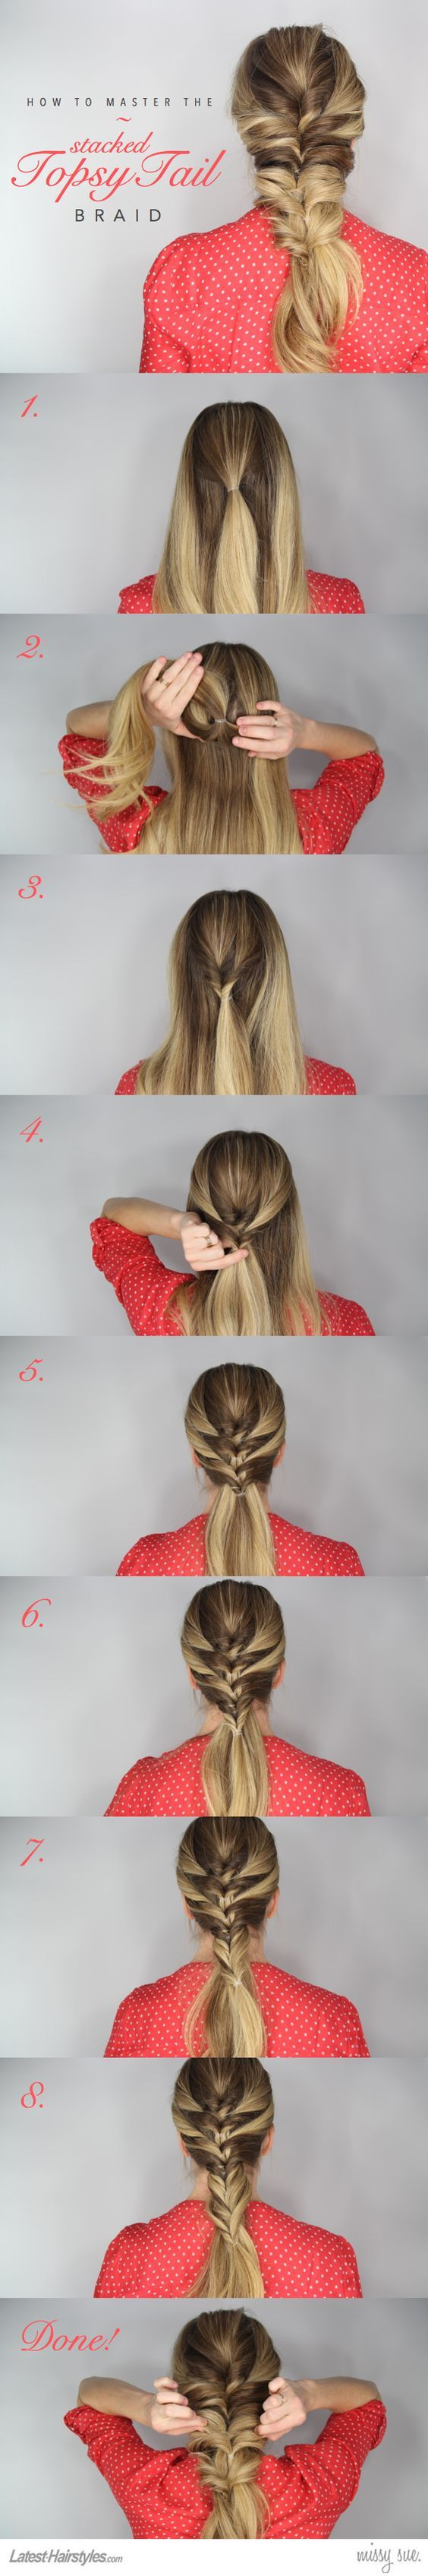 Pretty Braided Crown Hairstyle Tutorials and Ideas / http://www.himisspuff.com/easy-diy-braided-hairstyles-tutorials/38/